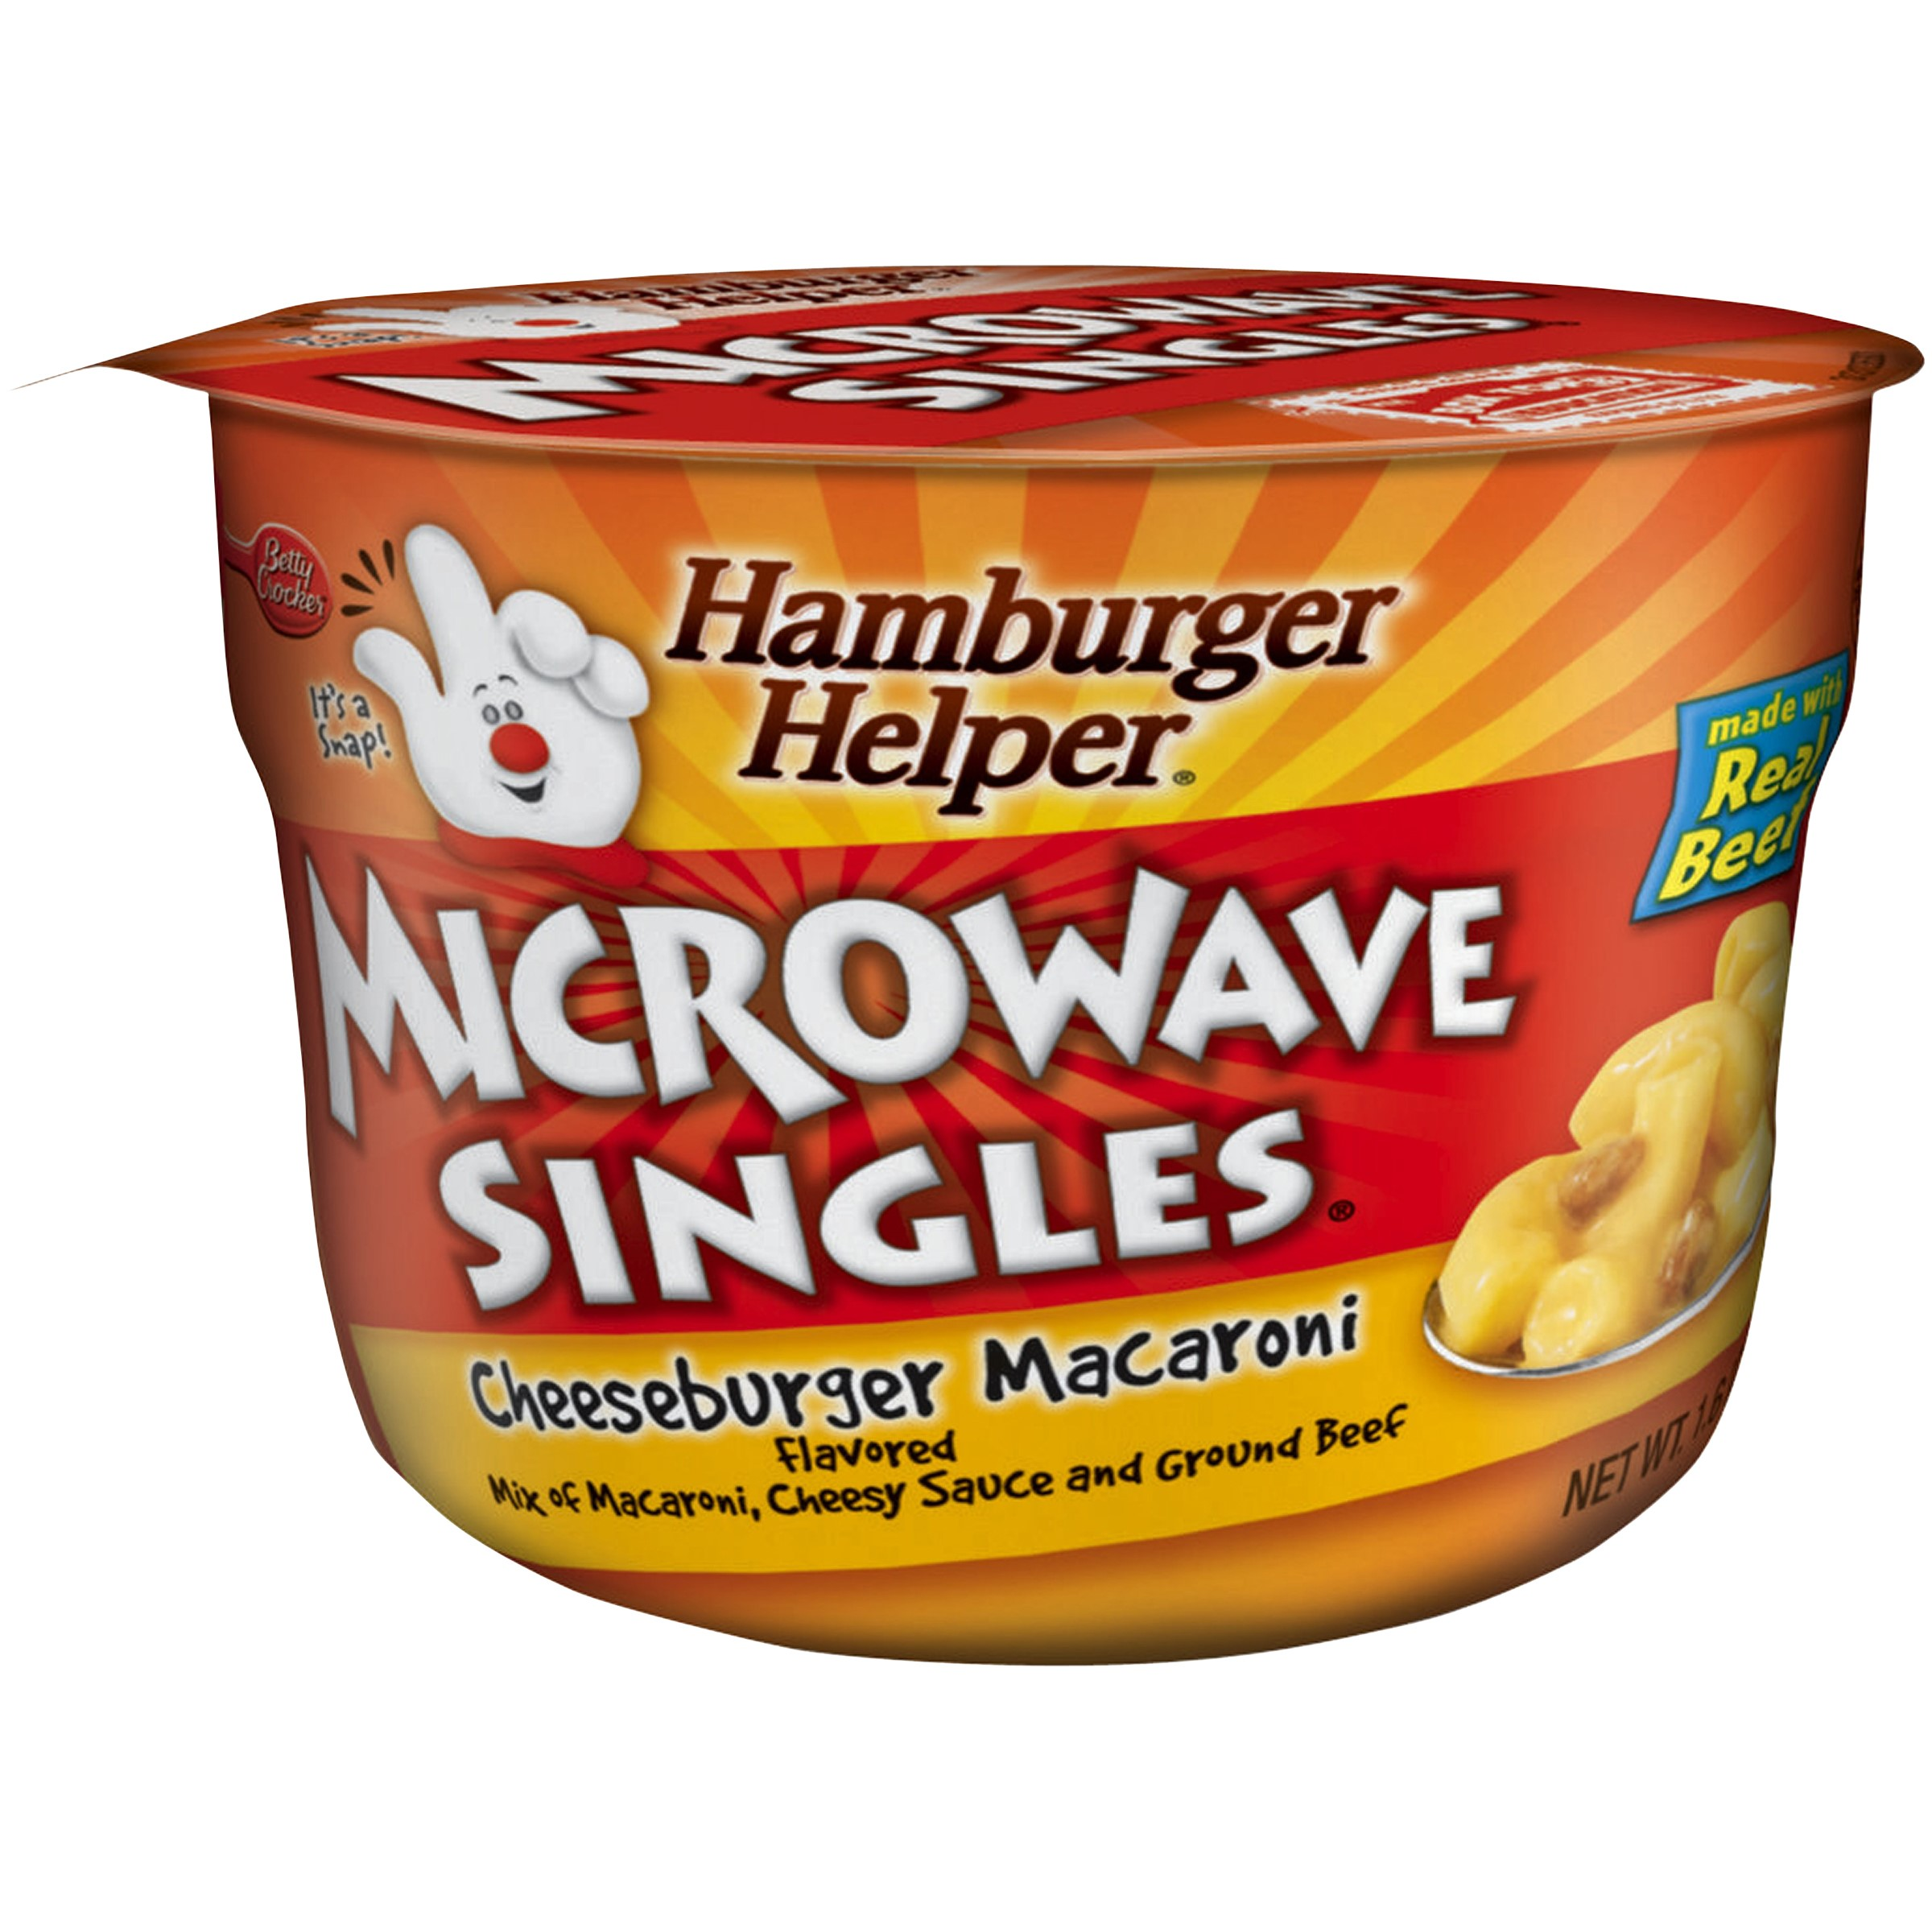 Betty Crocker™ Microwave Singles® Cheeseburger Macaroni